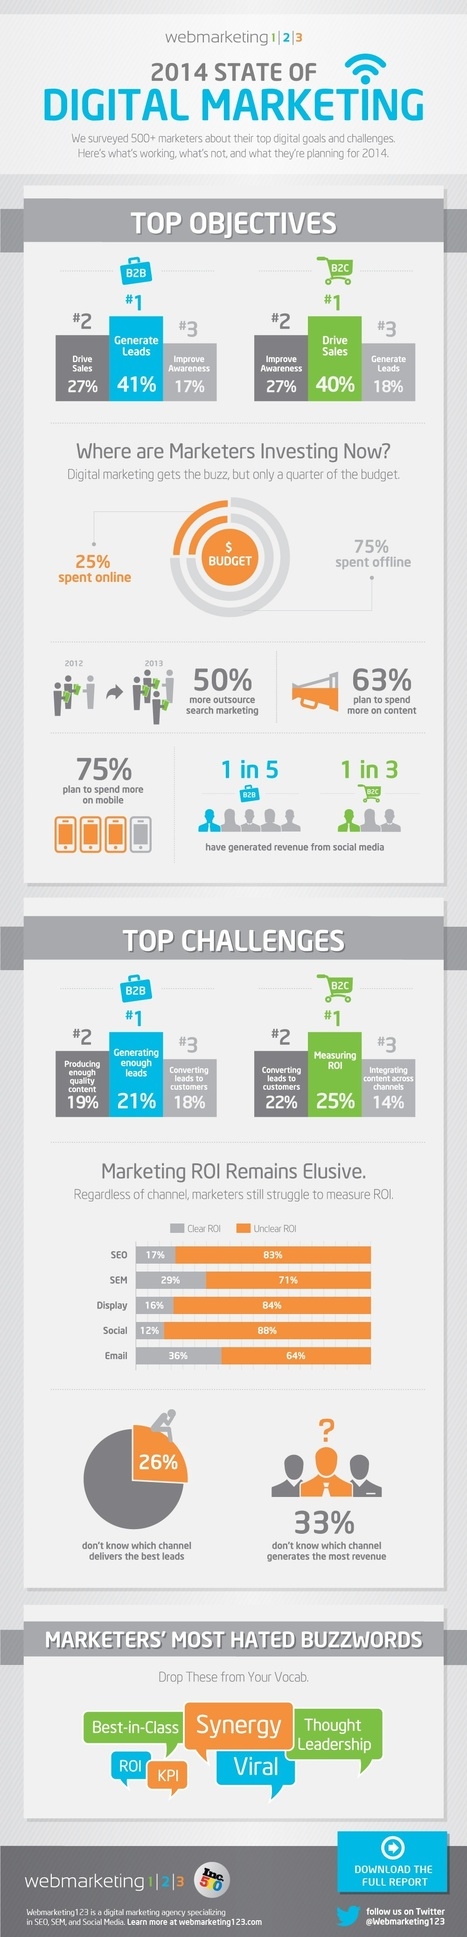 State of Digital Marketing 2014 [Infographic] - SocialTimes | BI Revolution | Scoop.it